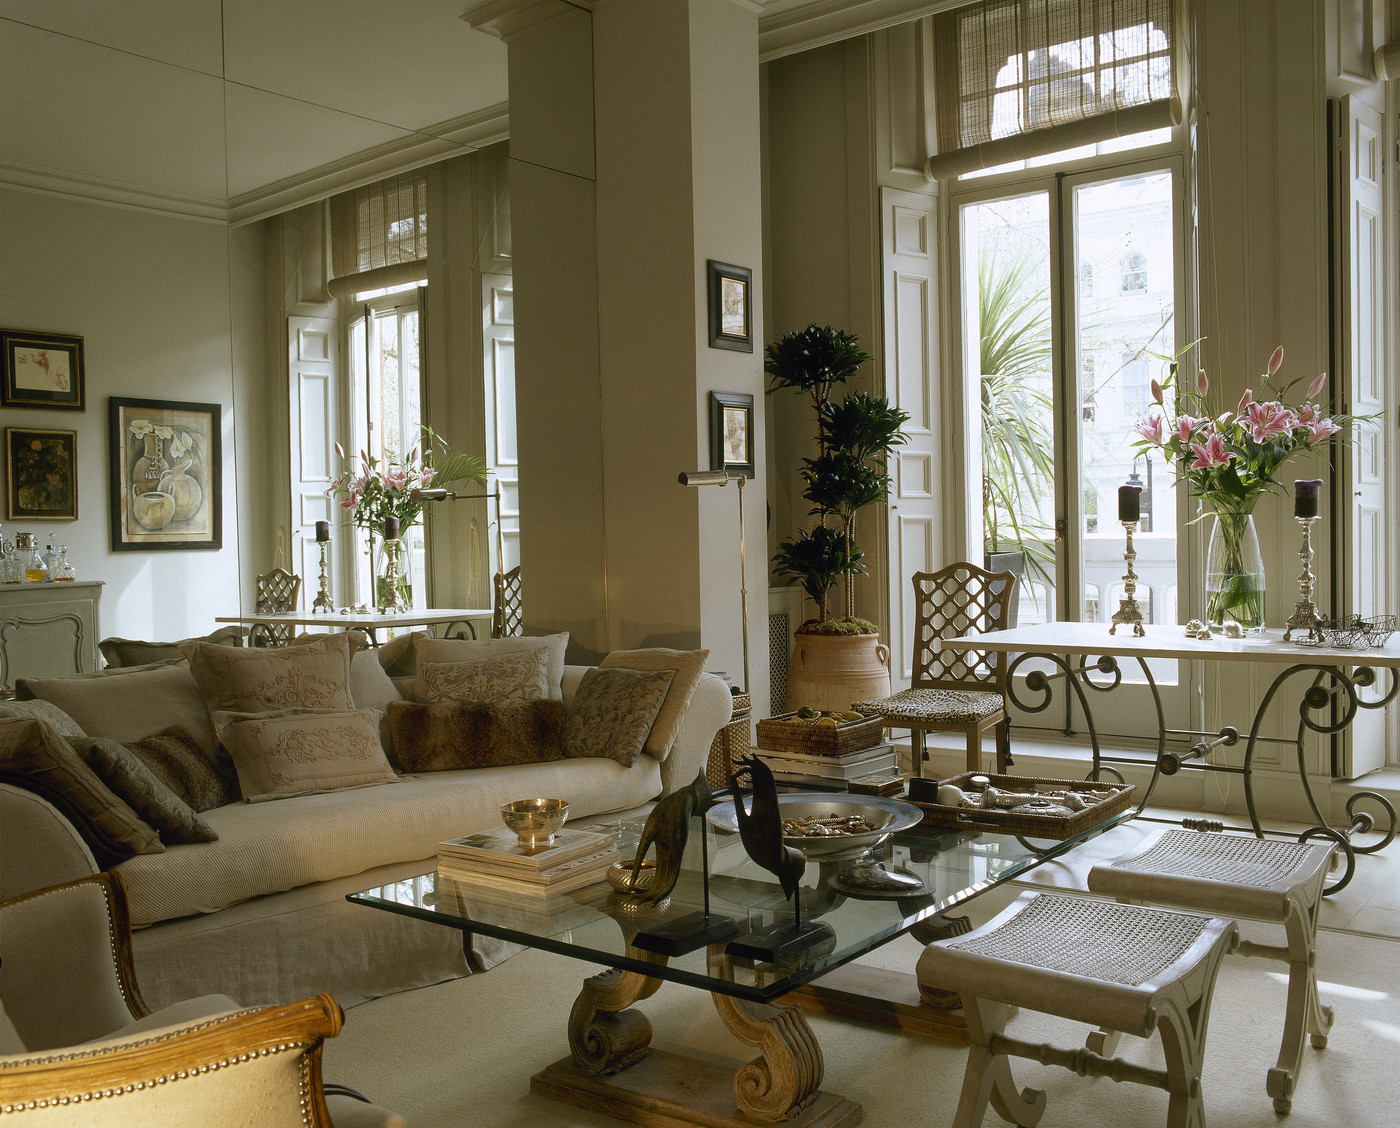 Sofa Beige Sofa Photos  Design  Ideas  Remodel  and Decor   Lonny. Living Room Paint Ideas Beige Furniture. Home Design Ideas